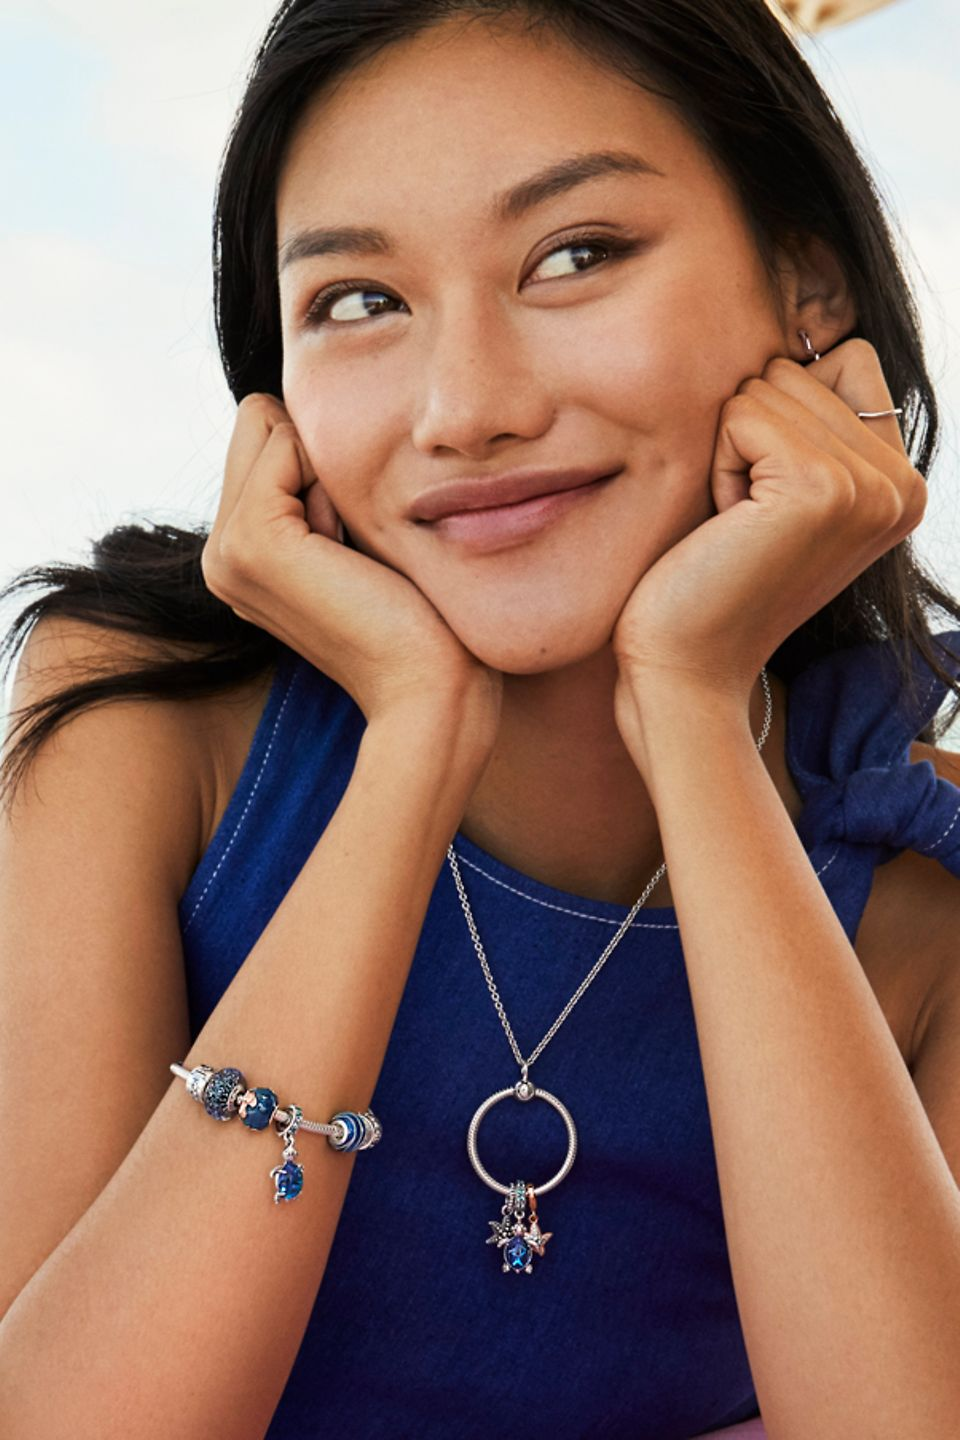 Make a splash with ocean charms inspired by the deep blue.